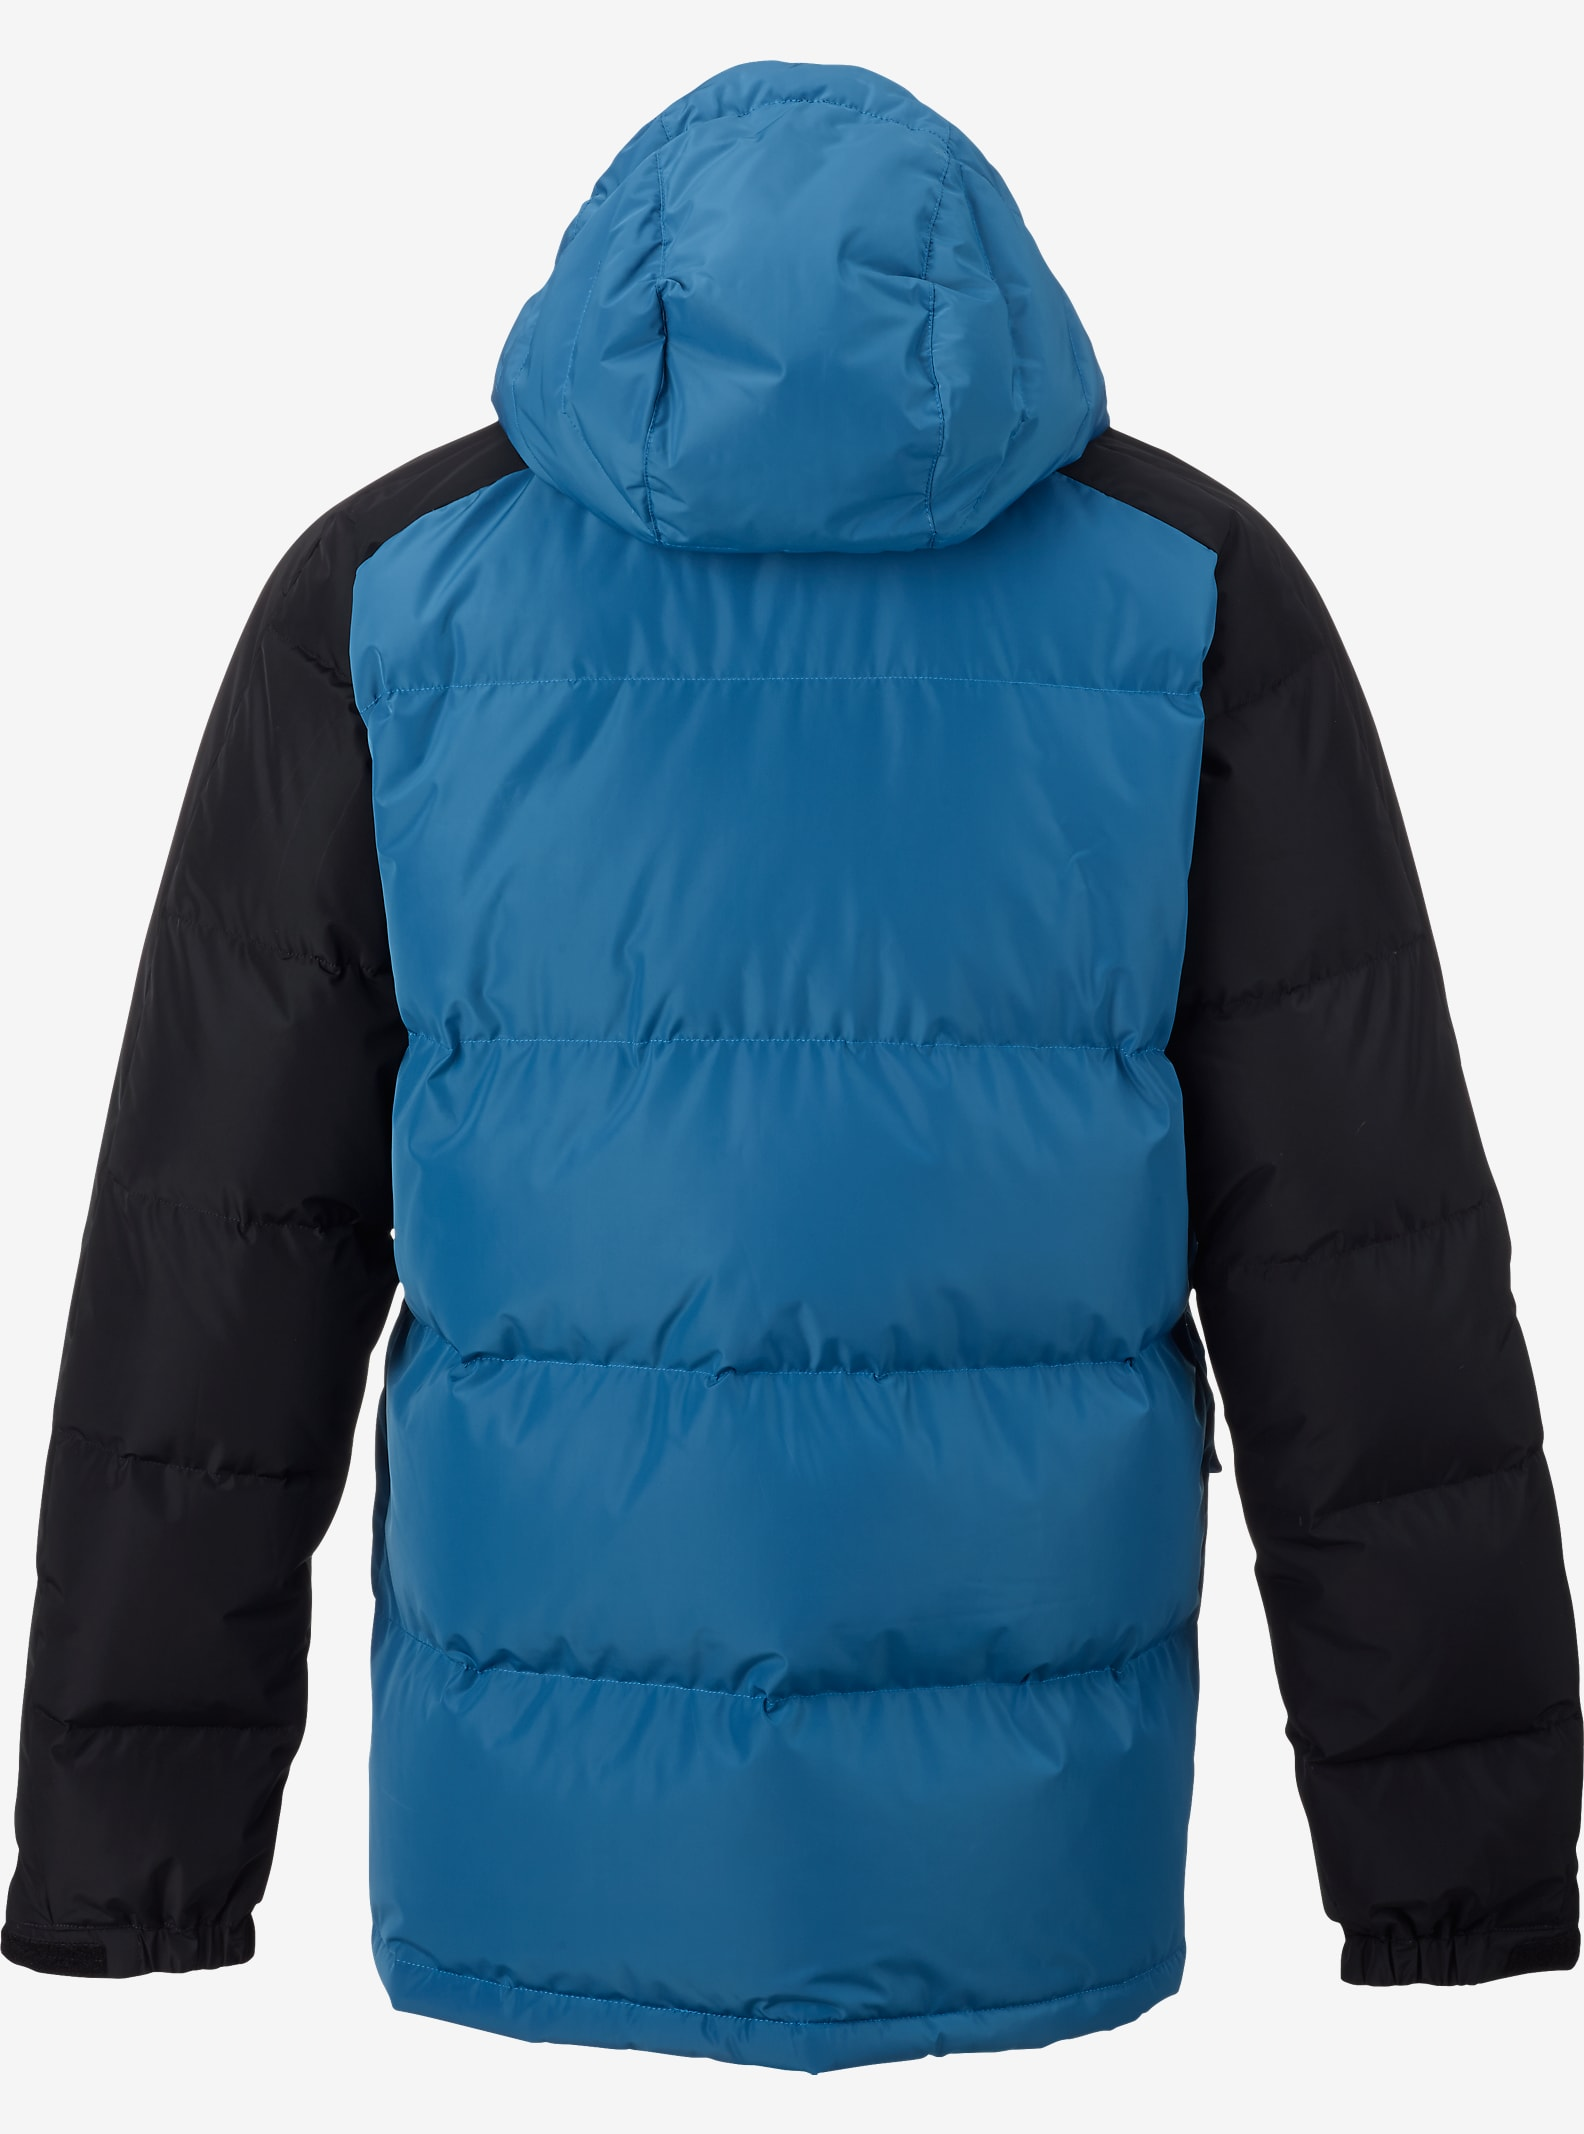 Analog Innsbruck Down Jacket shown in Sky Blue / Black